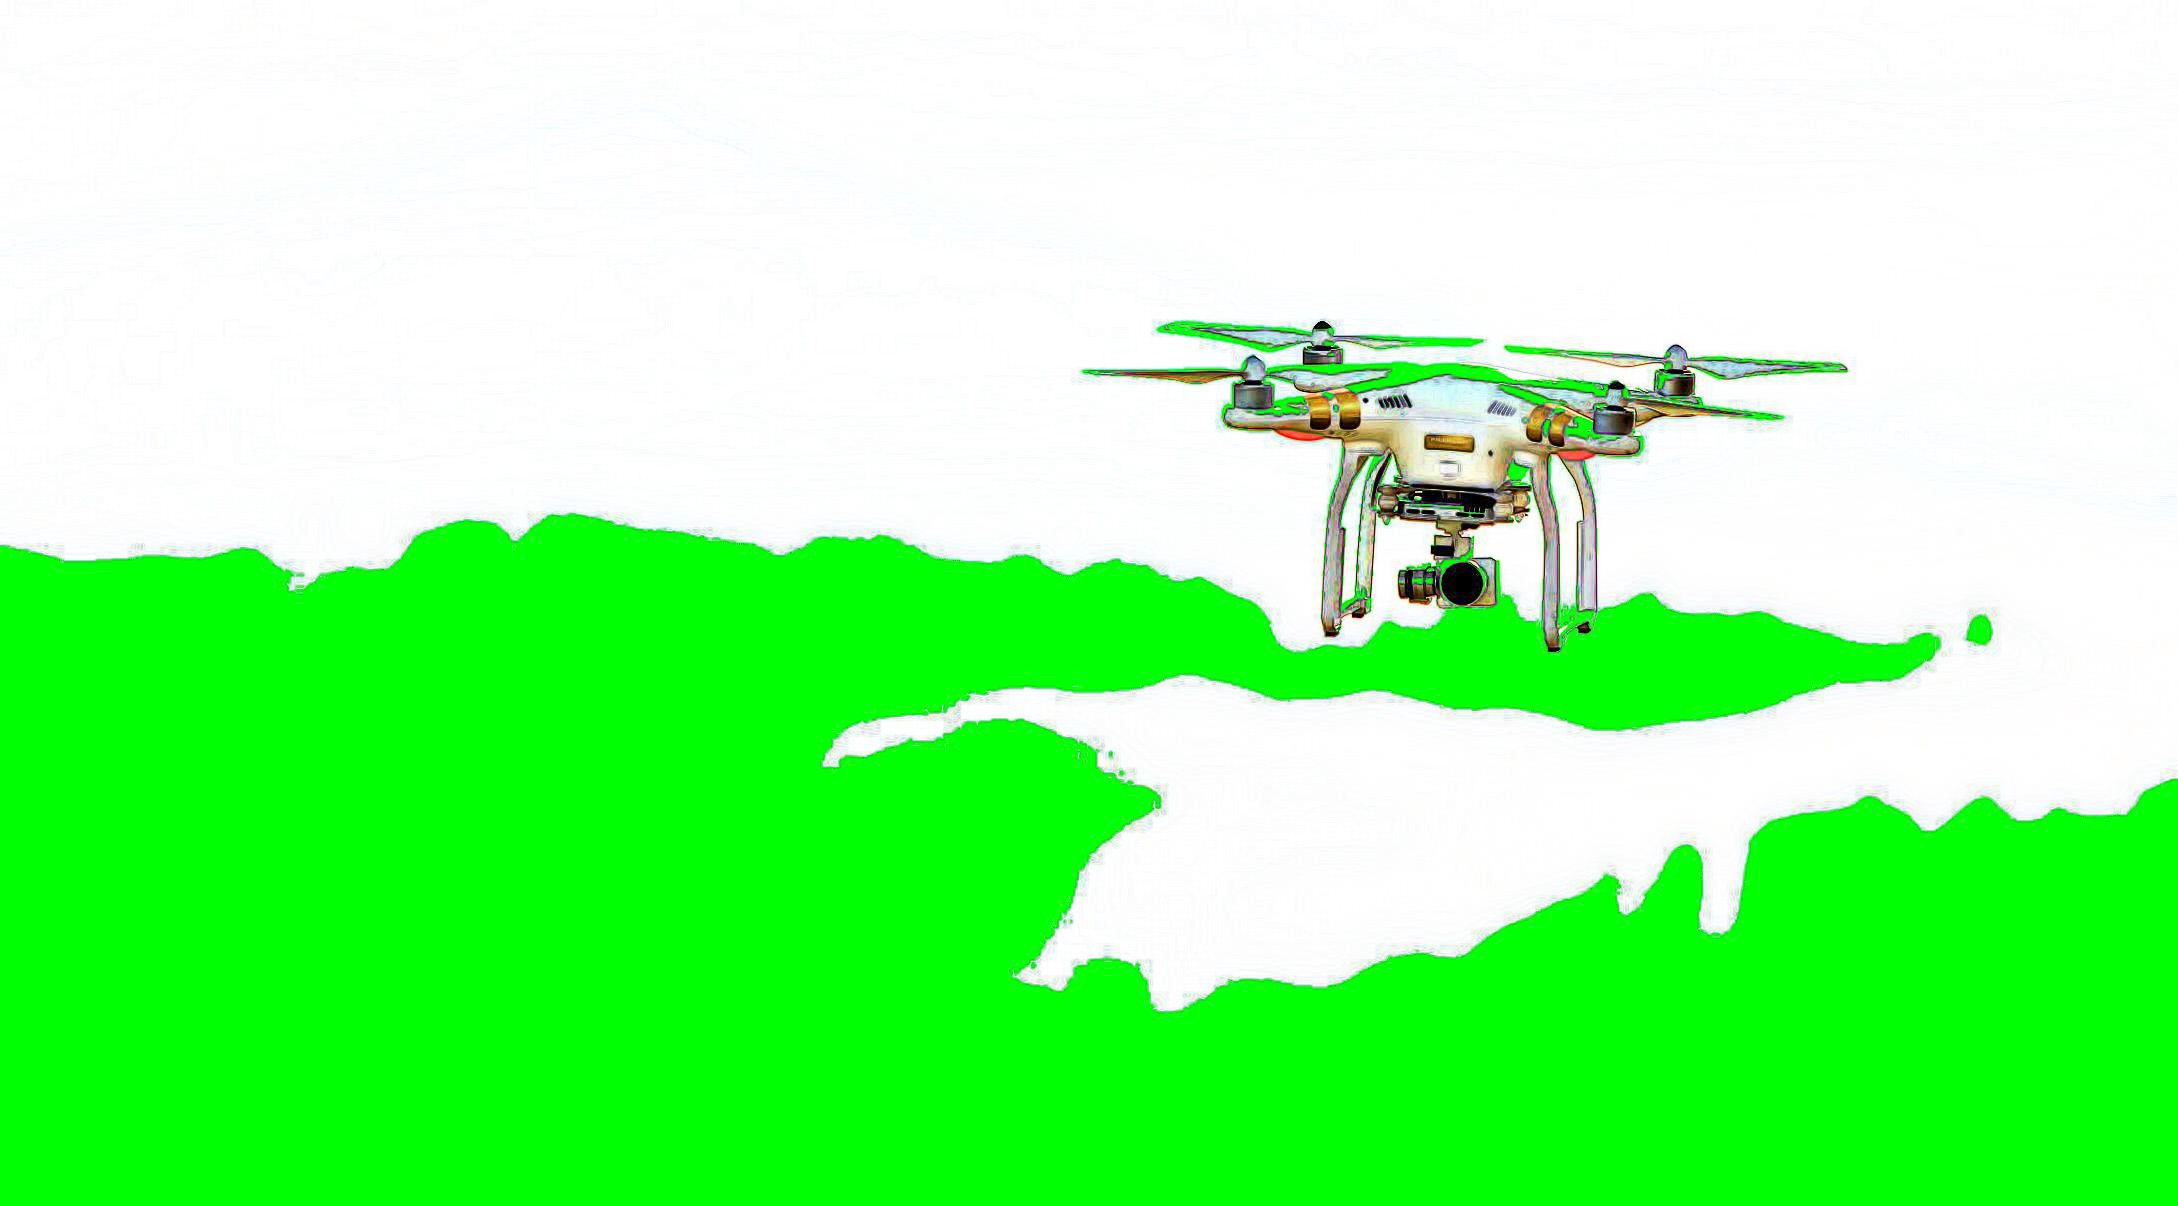 /the-4-primary-concerns-about-domestic-drones-b6f622bd7a1b feature image